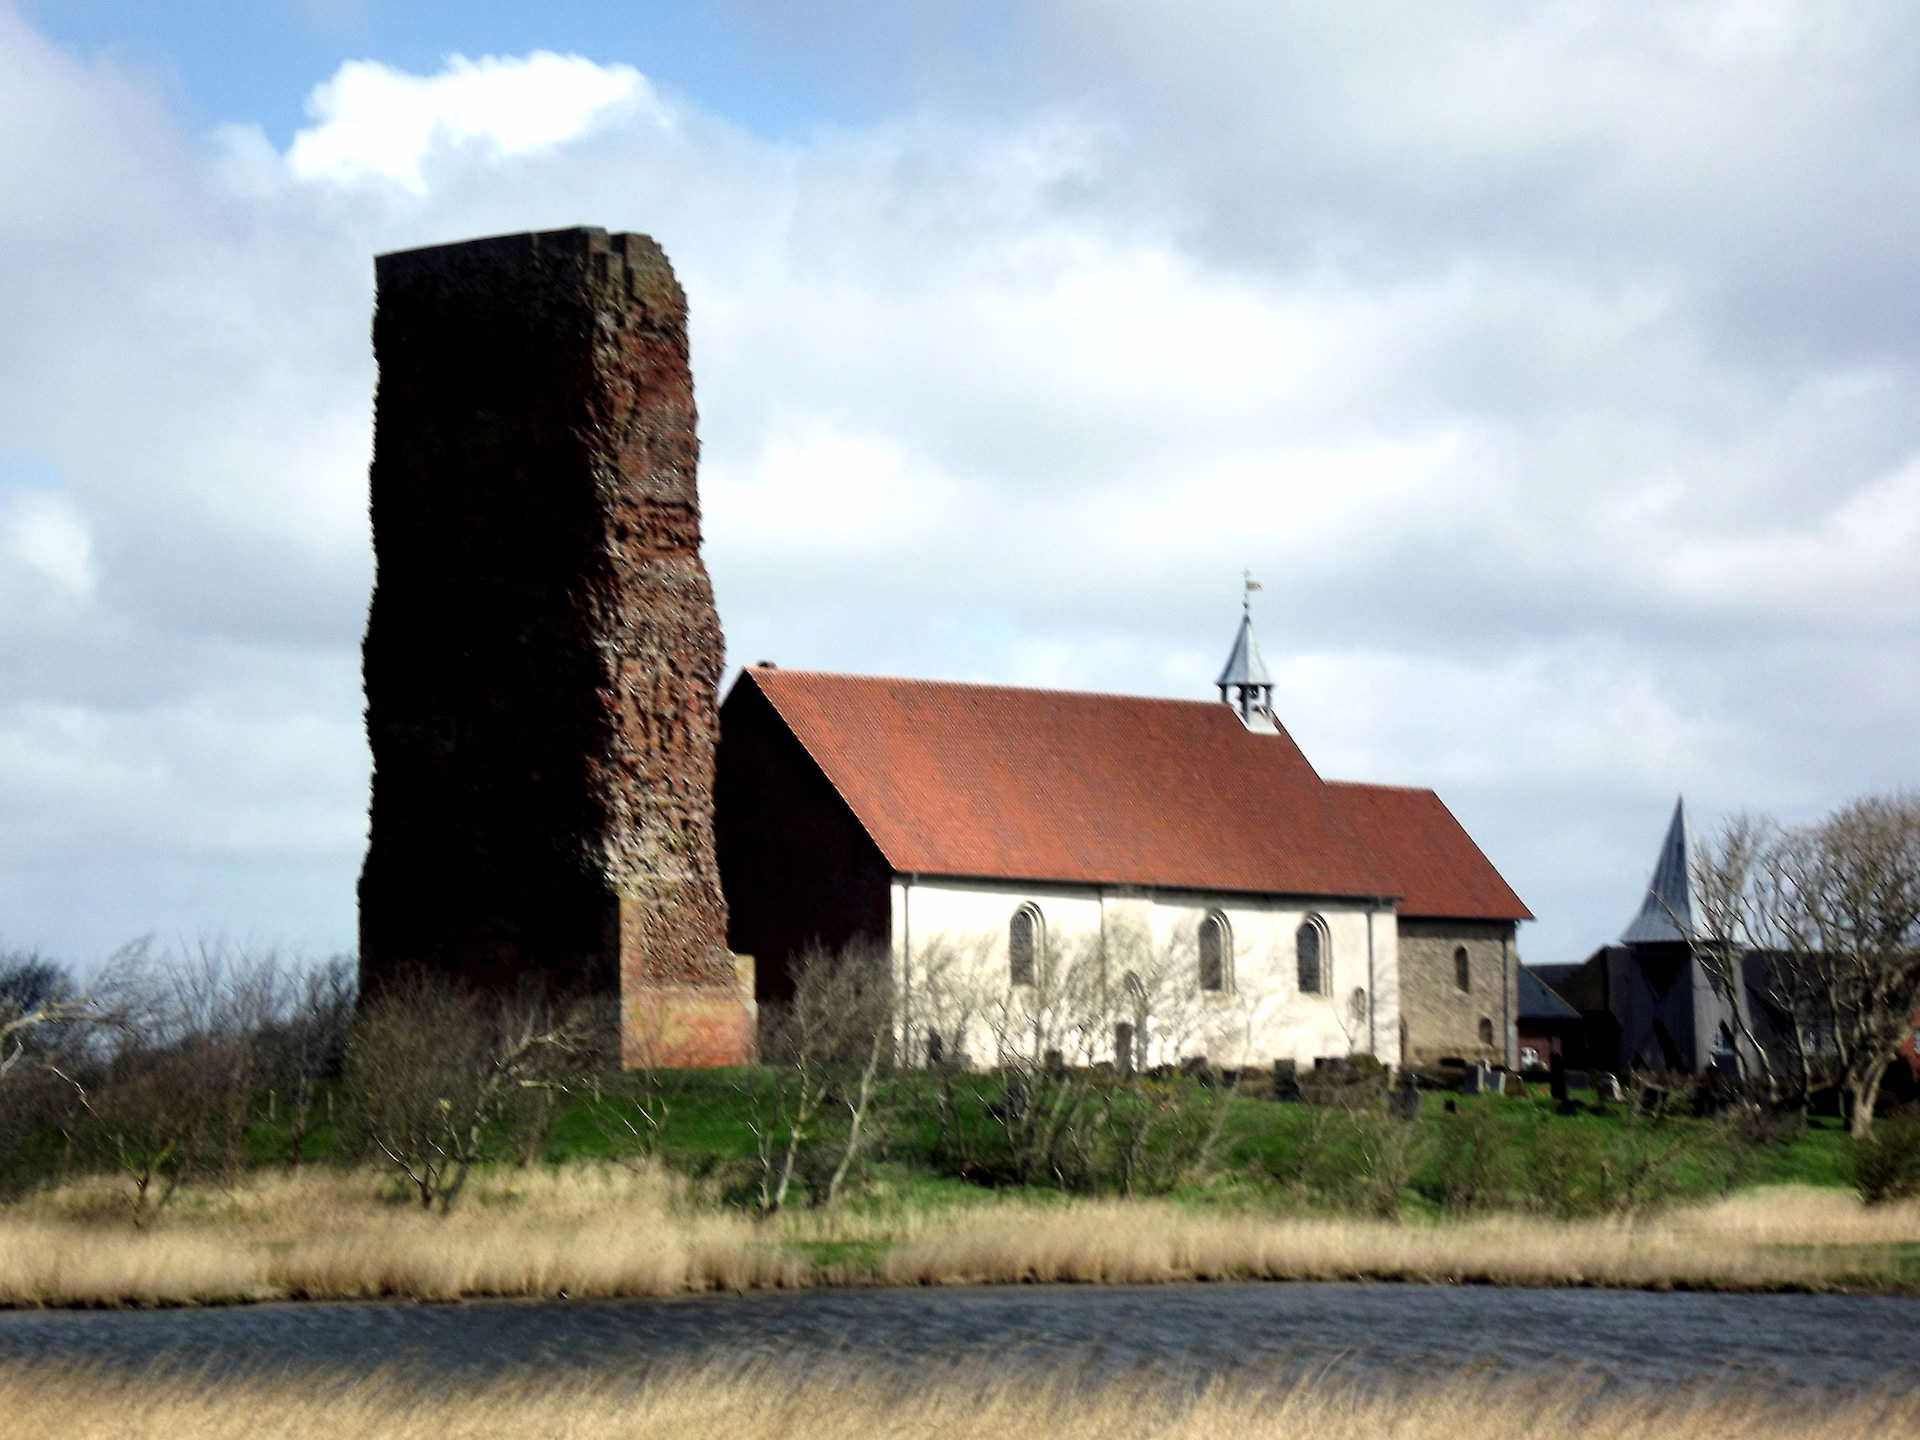 Kirche Museum Ruine Pellworm Nordsee